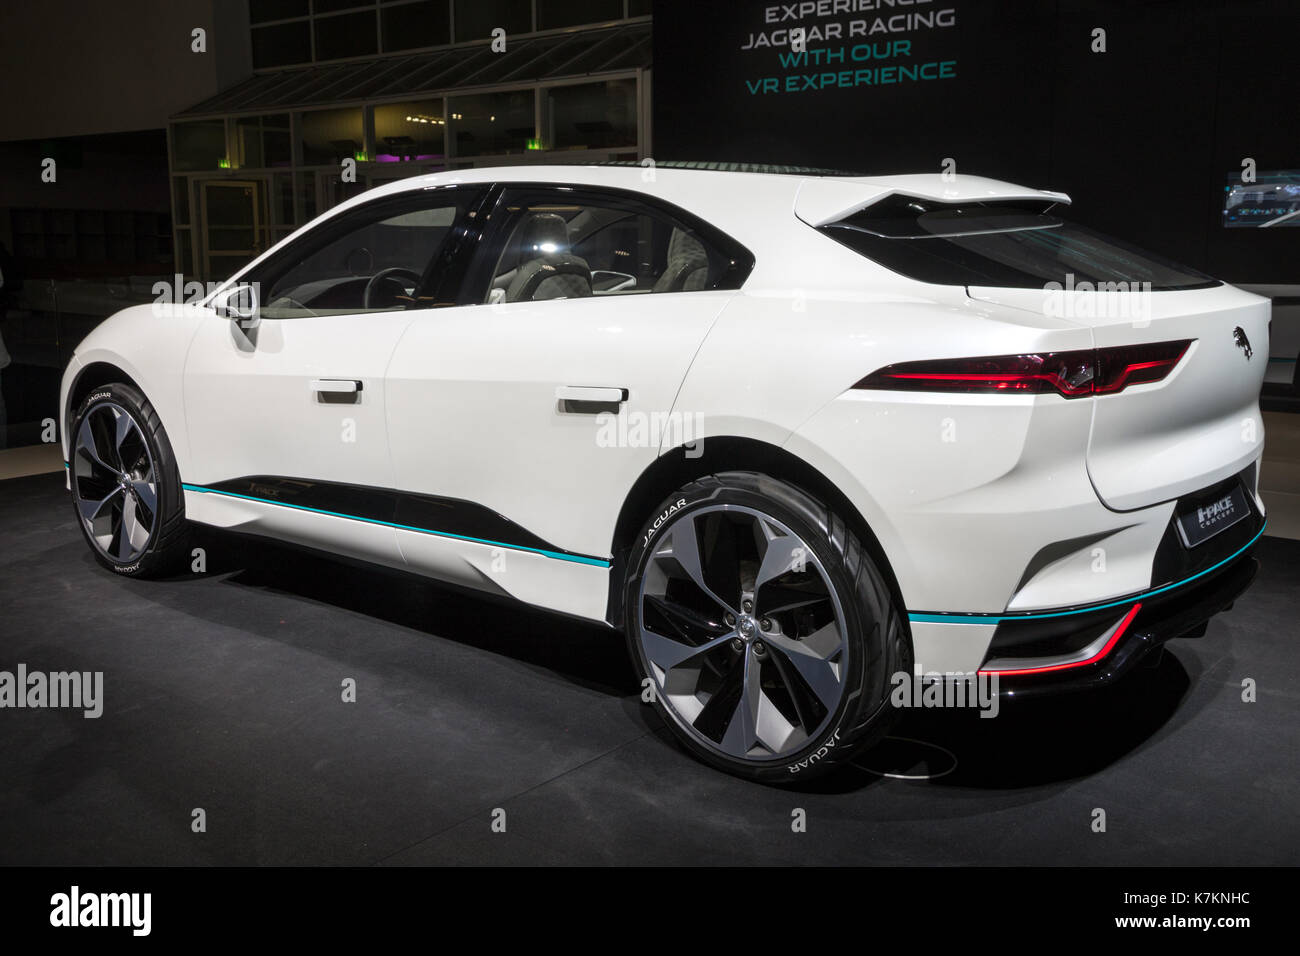 FRANKFURT, GERMANY   SEP 12, 2017: New 2018 Jaguar I Pace Concept Electric  SUV Car Showcased At The Frankfurt IAA Motor Show 2017.